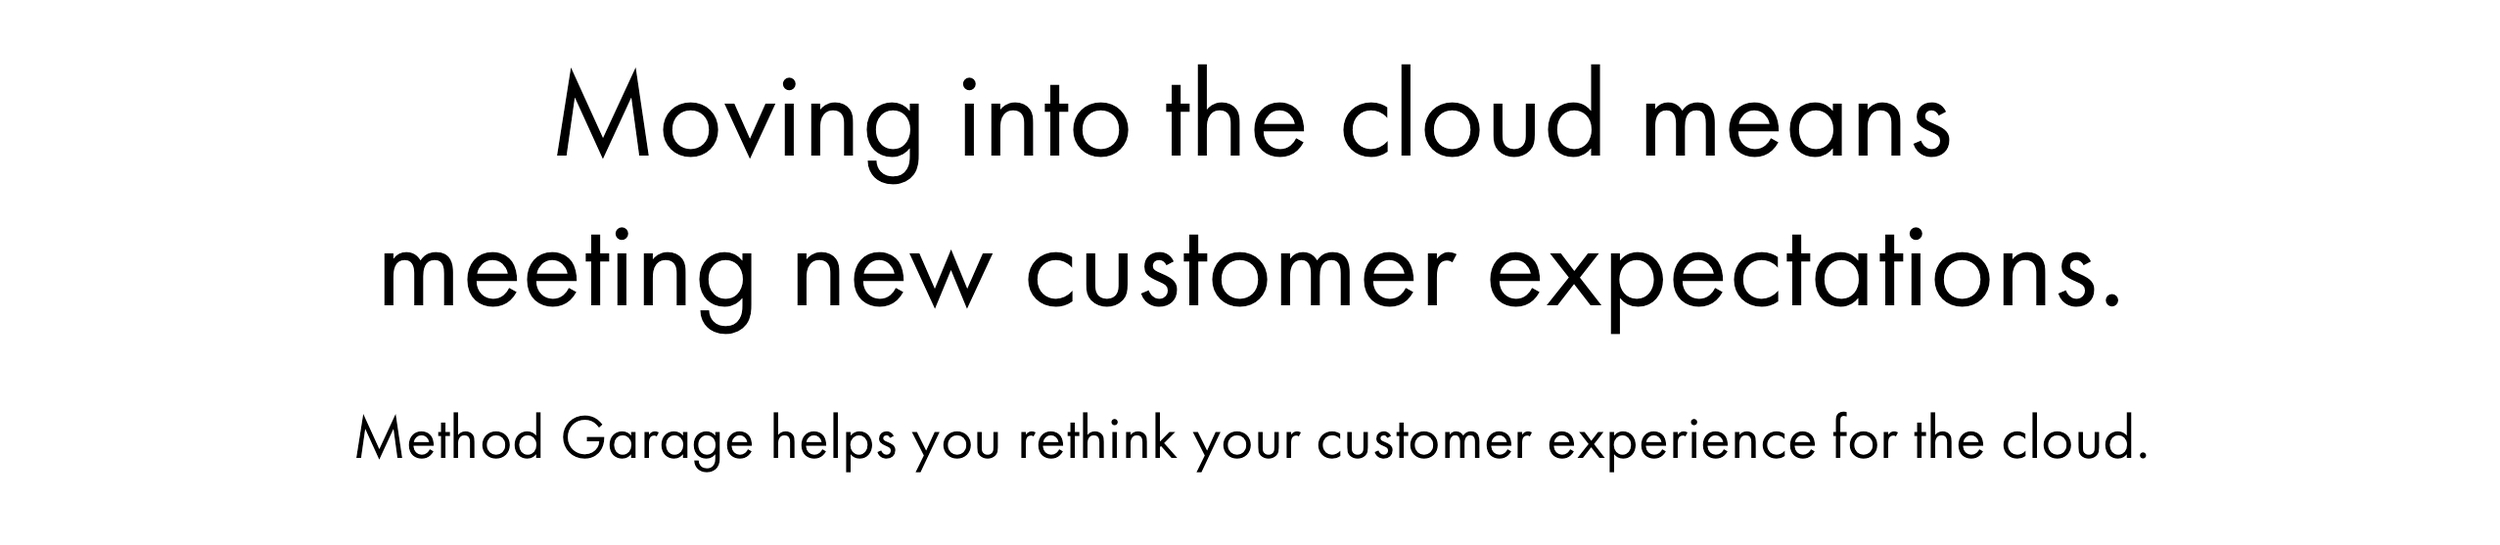 Moving into the cloud.jpg